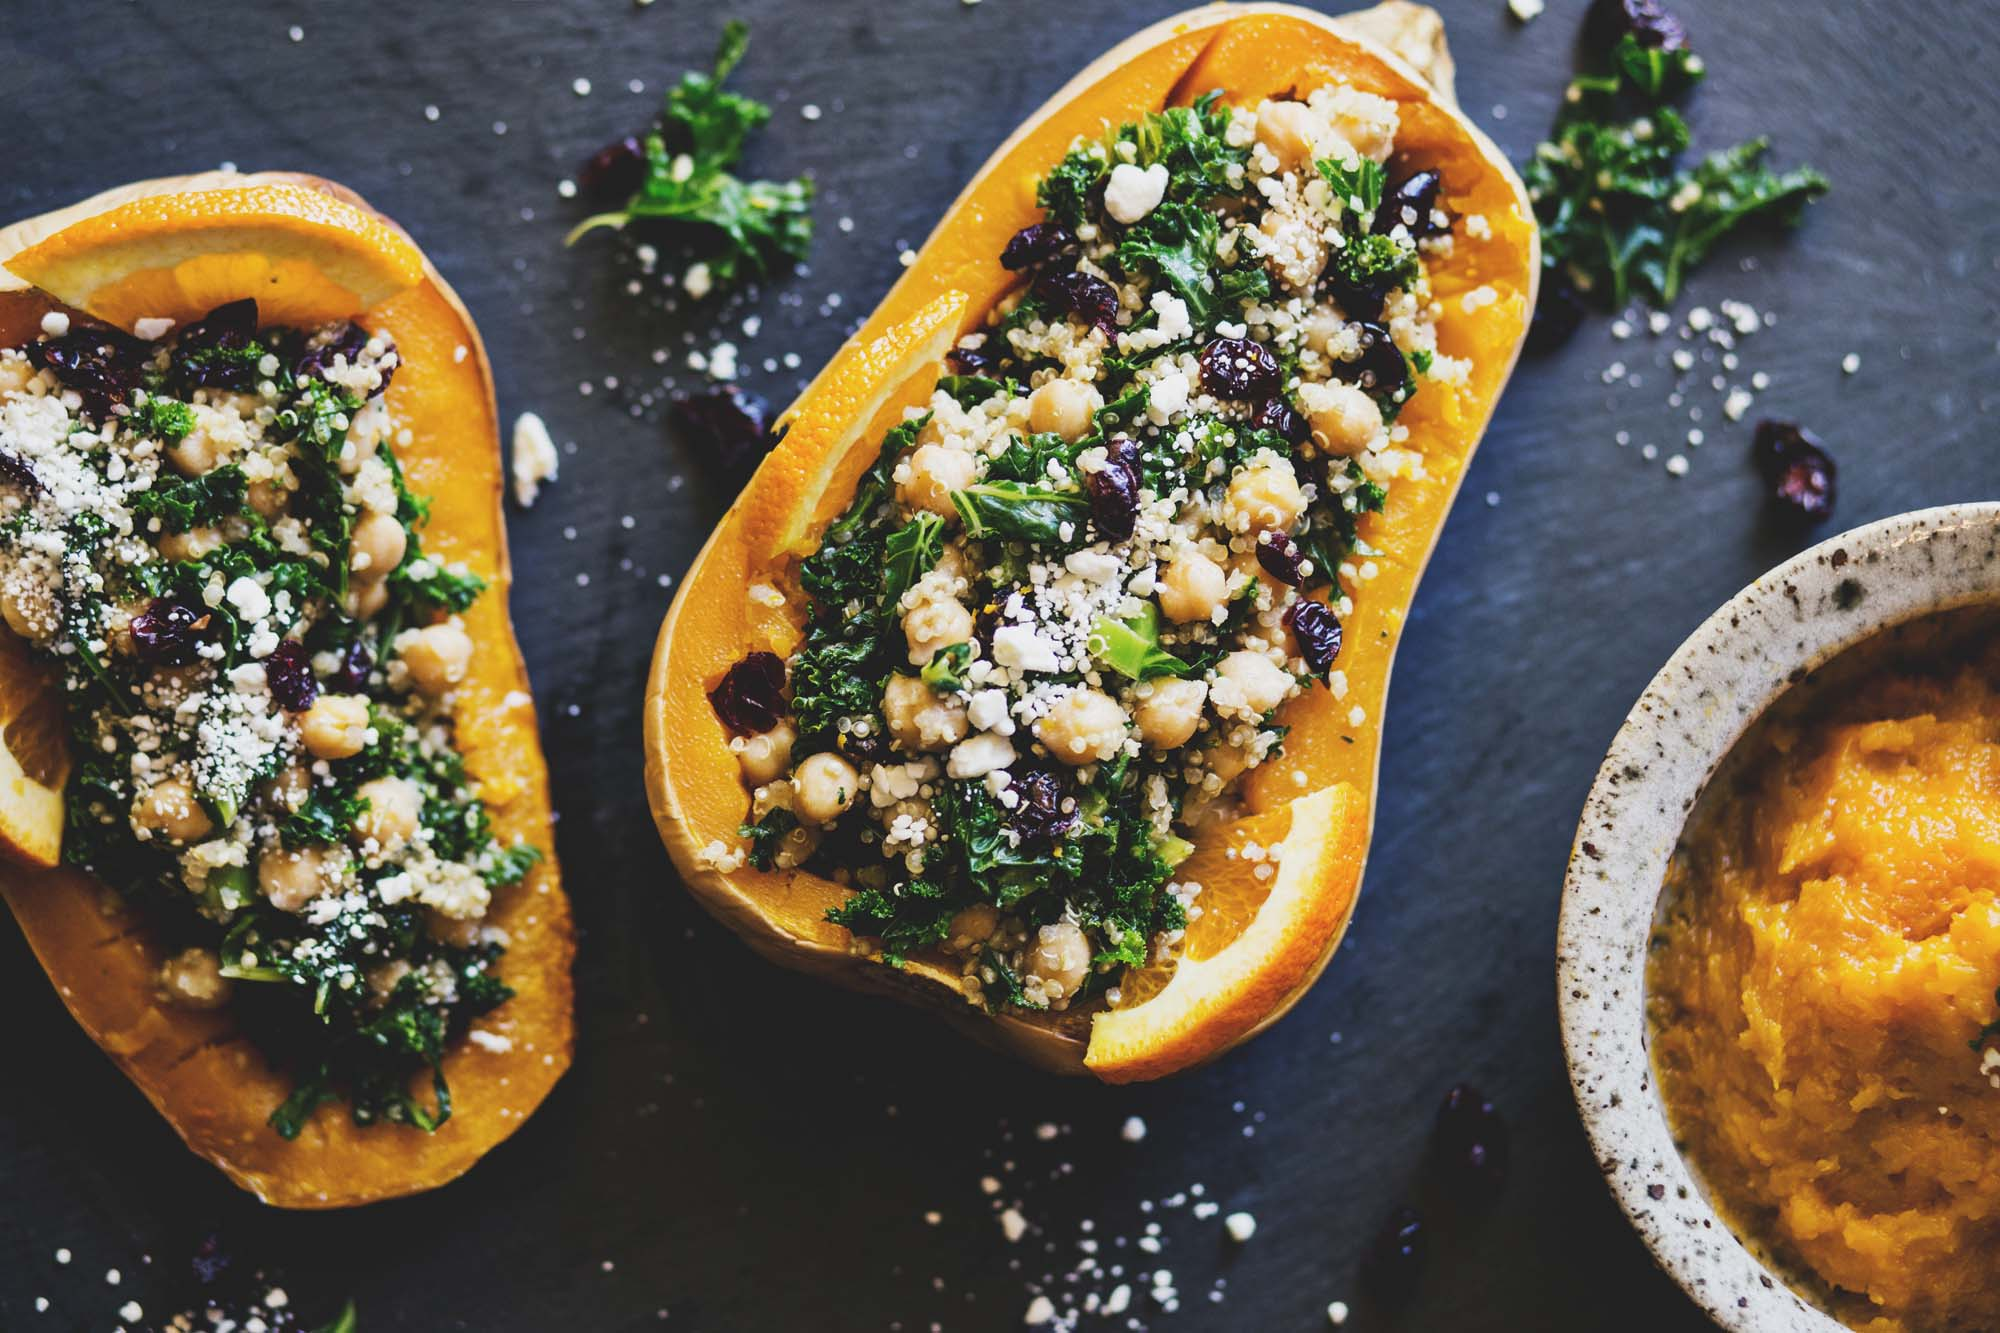 Stuffed Butternut Squash with kale, cranberries, quinoa, and chi